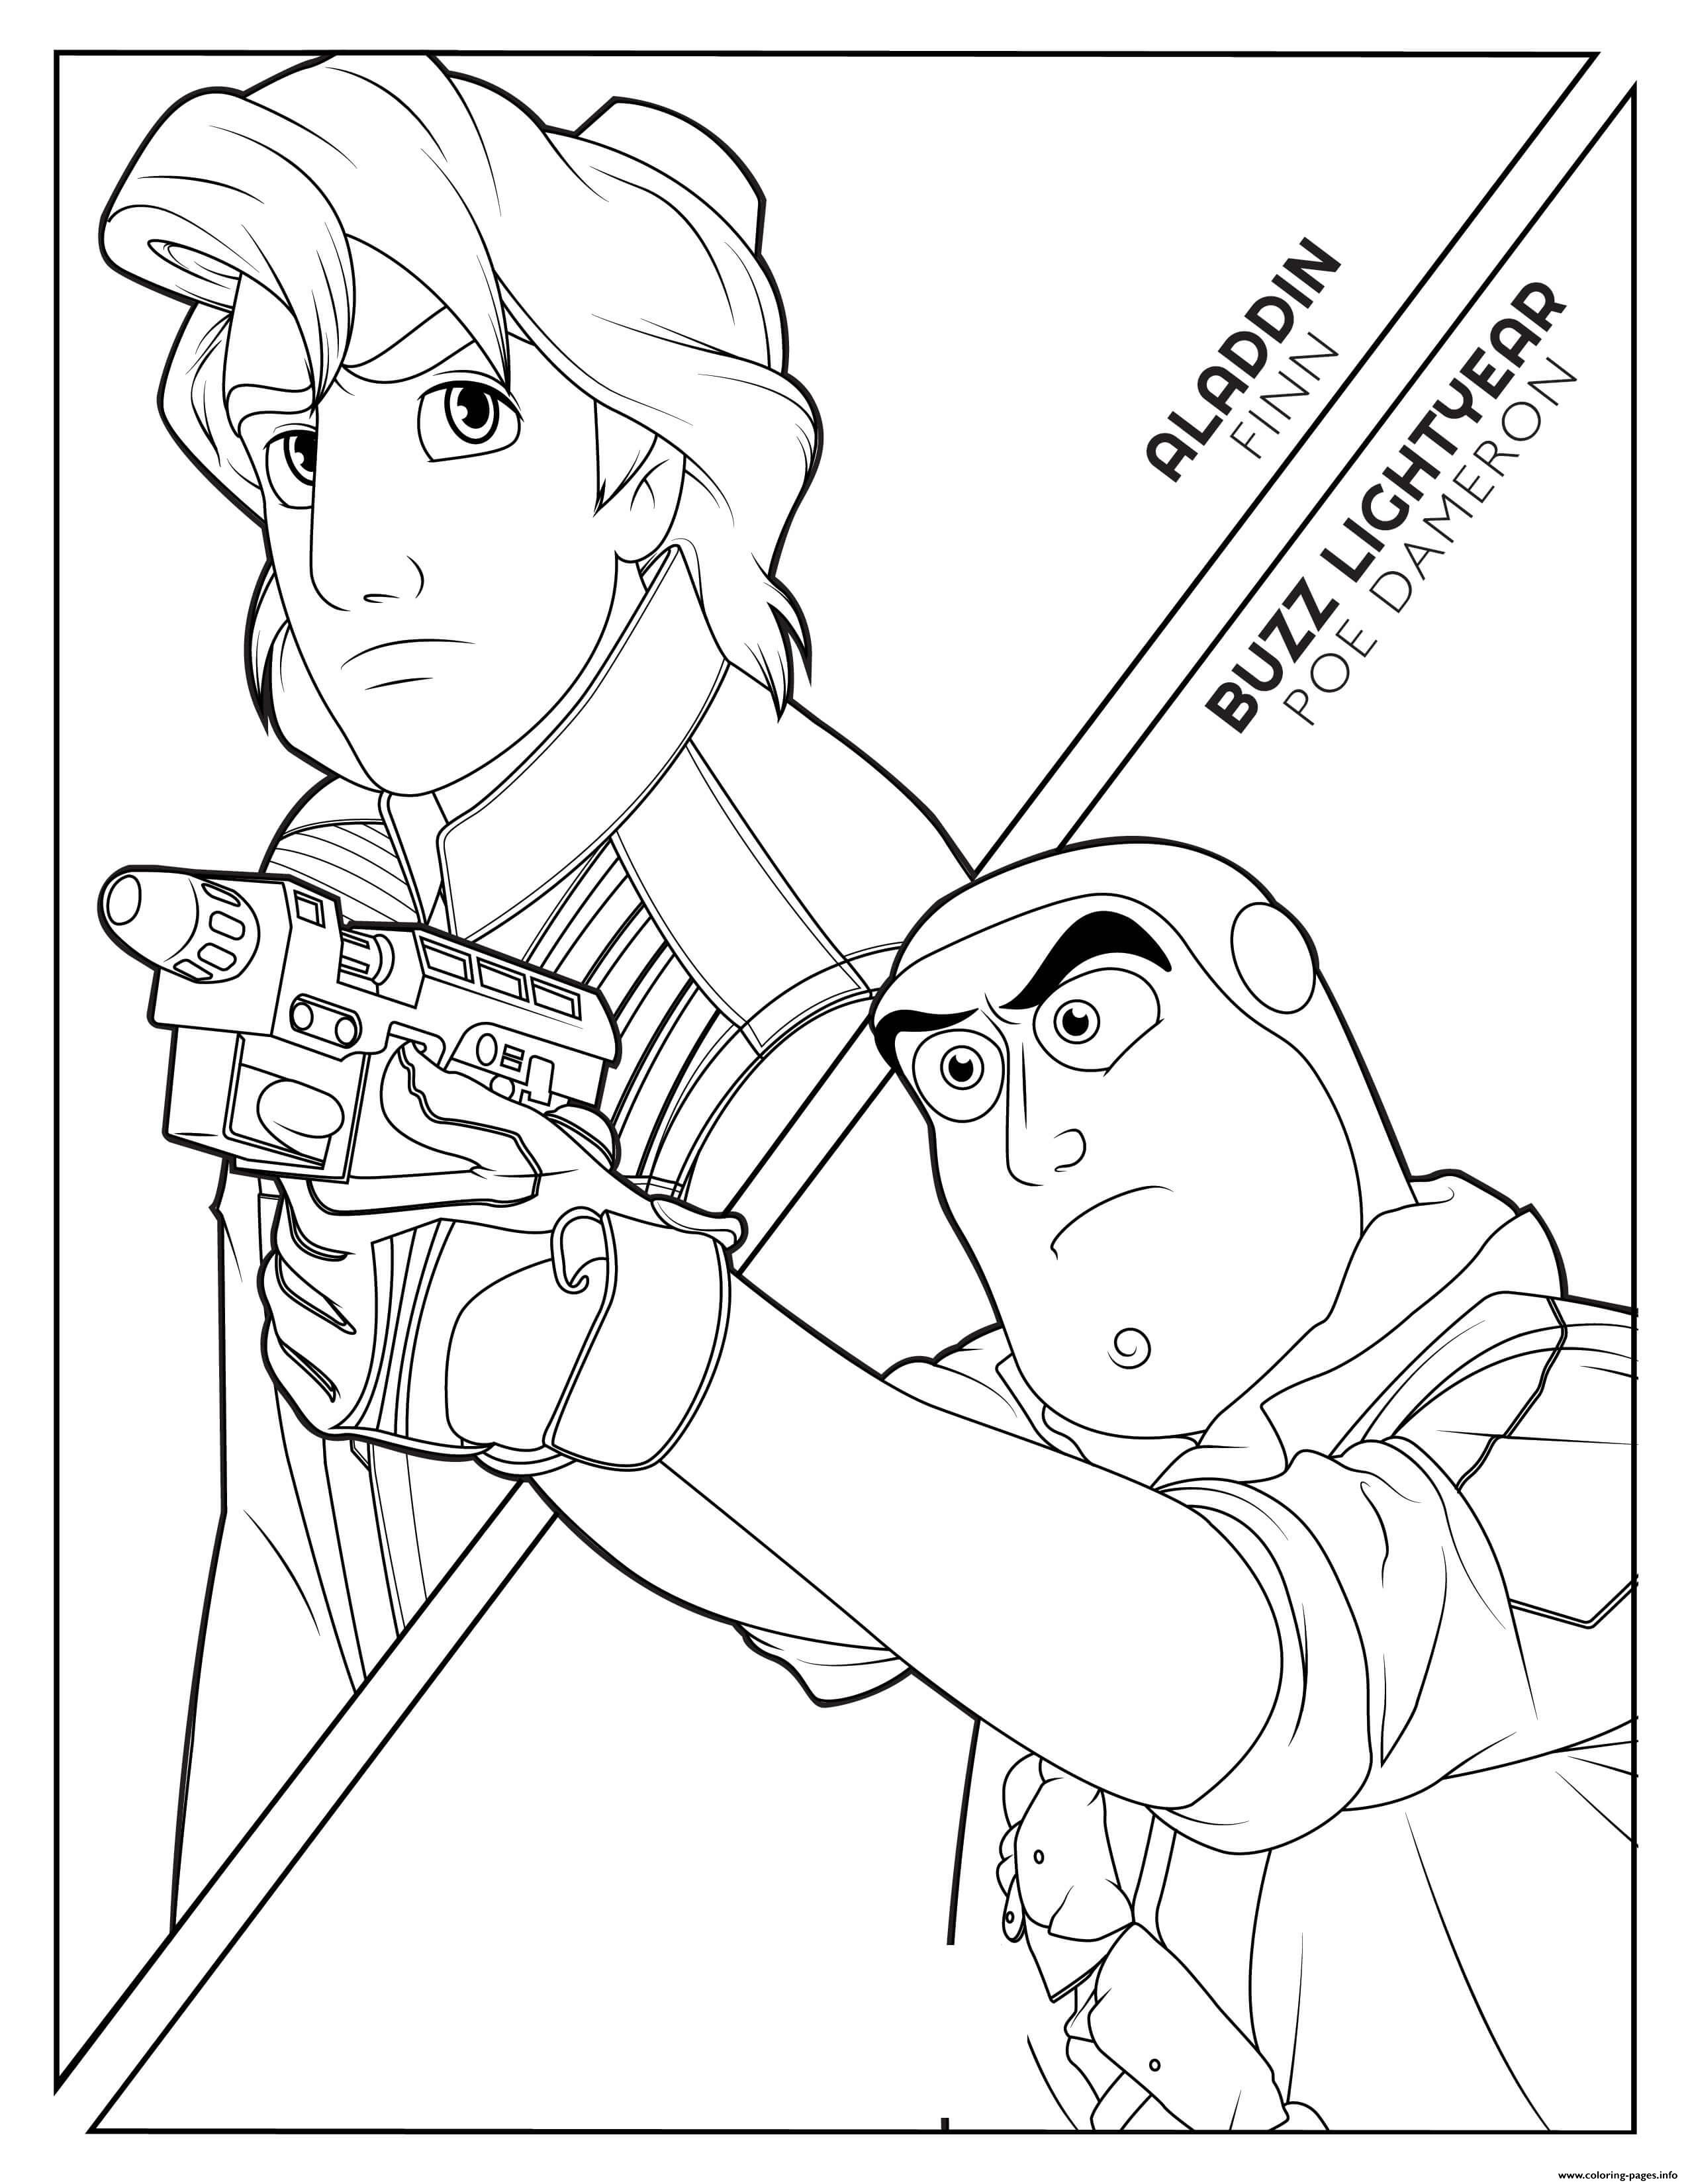 Finn Aladdin Poe Buzz Lightyear Disney Star Wars coloring pages